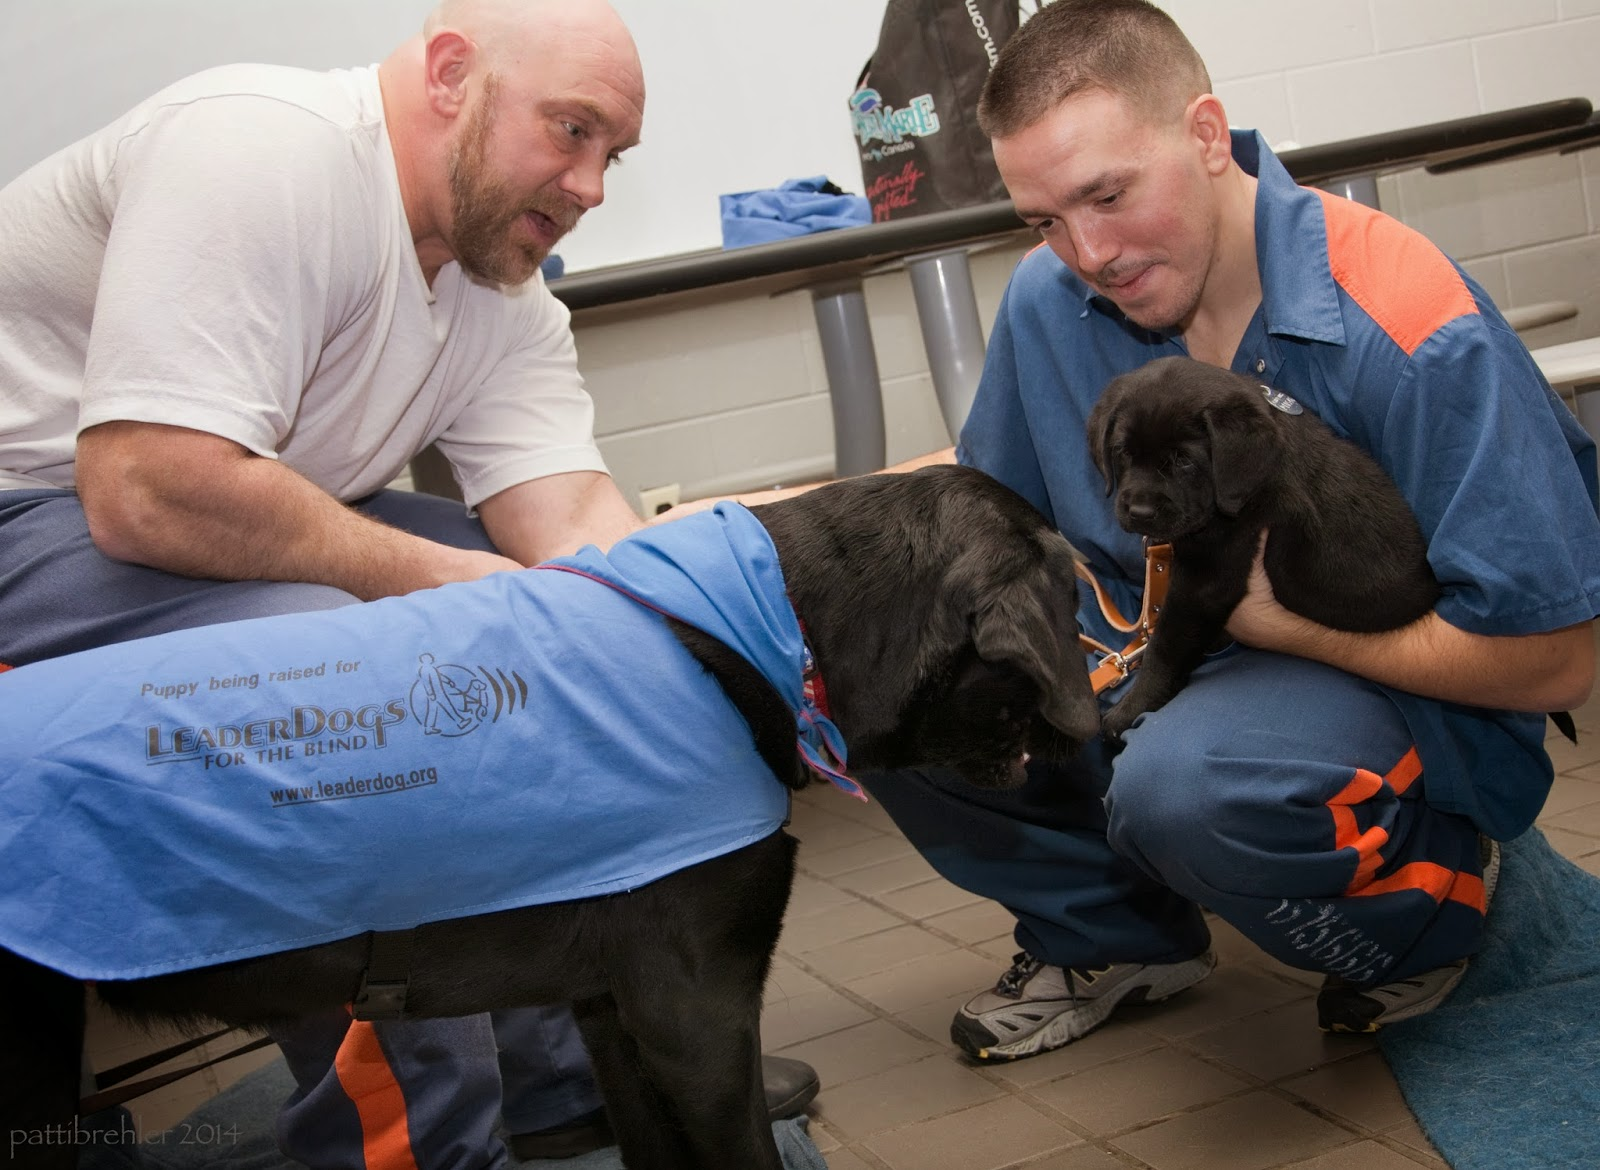 An almost adult black lab wearing a  baby blue leader dogs for the blind working jacket is standing and facing to the right, nosing a small  black lab puppy that is being held by a young man who is squatting down. The man is wearing the pirson blue shirt and pants with the orange stripes on the shoulders and legs. The man is looking at the puppies. Another man is sitting on a table stool behind the larger puppy. He is wearing a white t-shirt and blue pants. He is bald with a short beard. His elbow are on his knees and he is looking at the littler pup. A lunch table is in the background with a bag on it.